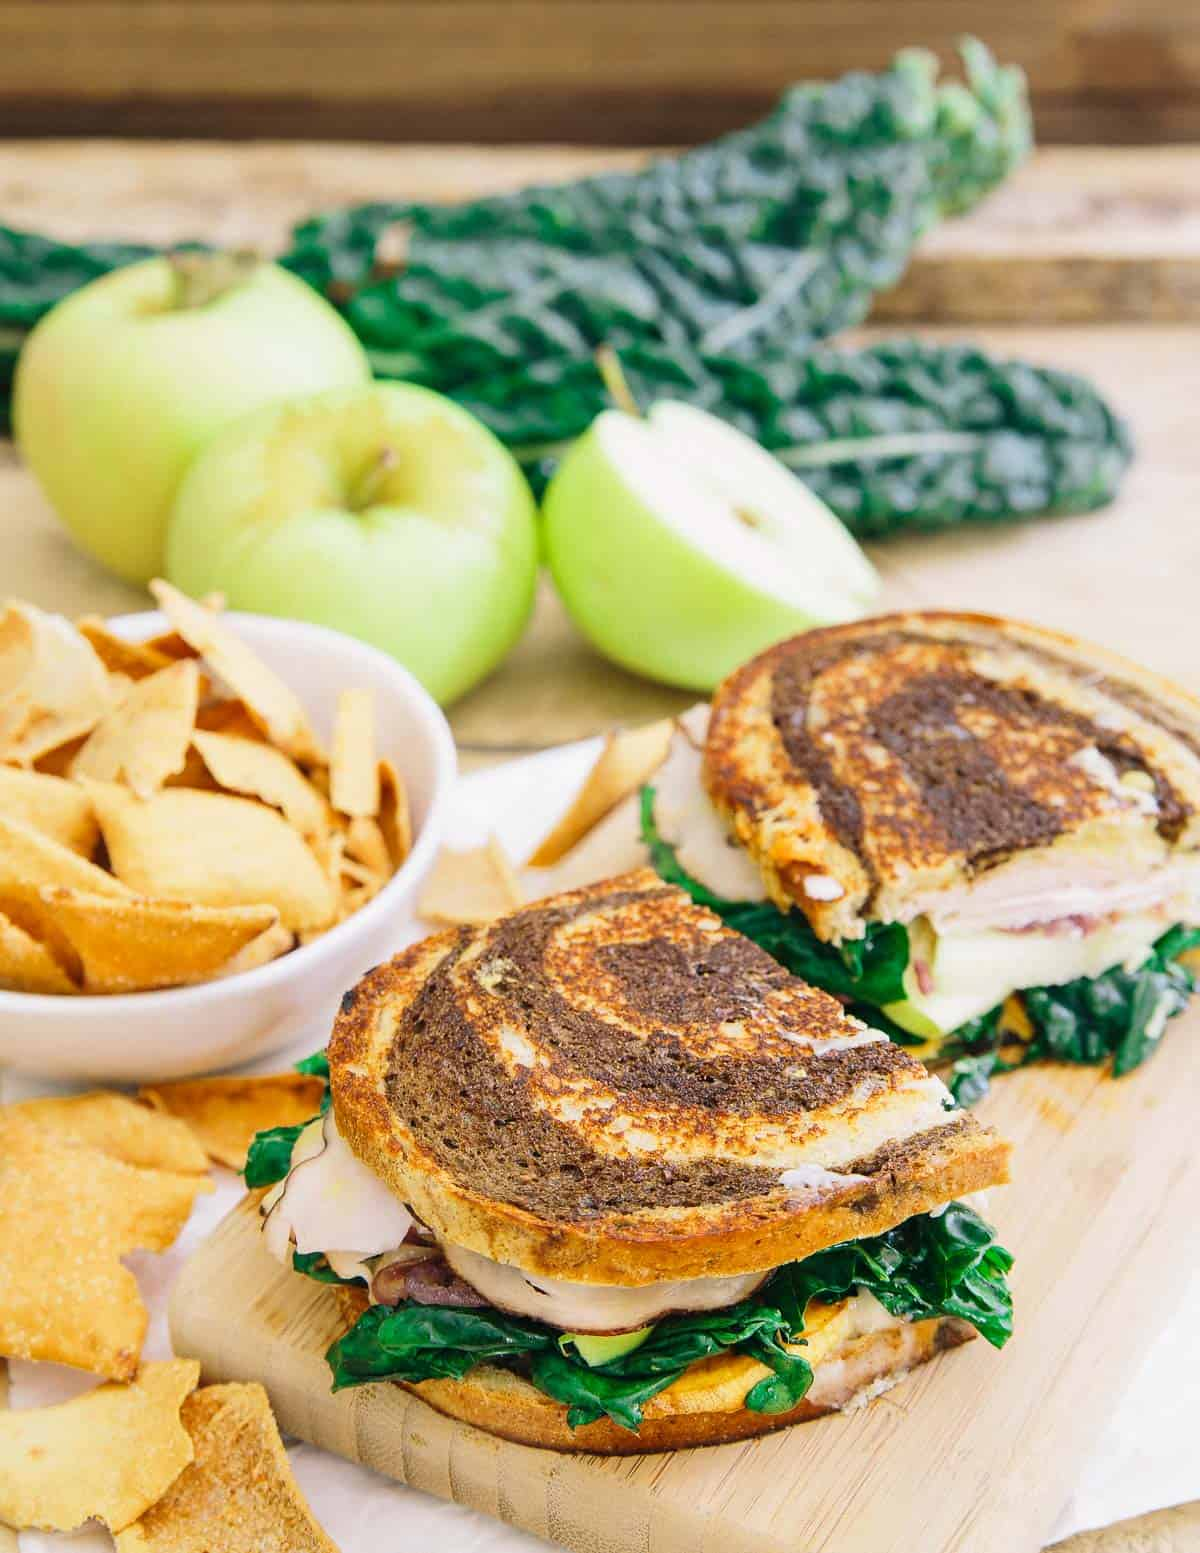 This roasted sweet potato apple ham sandwich is served hot and pressed with a generous amount of melted cheddar cheese and a honey mustard spread. There's a ton going on and you'll love every bite!